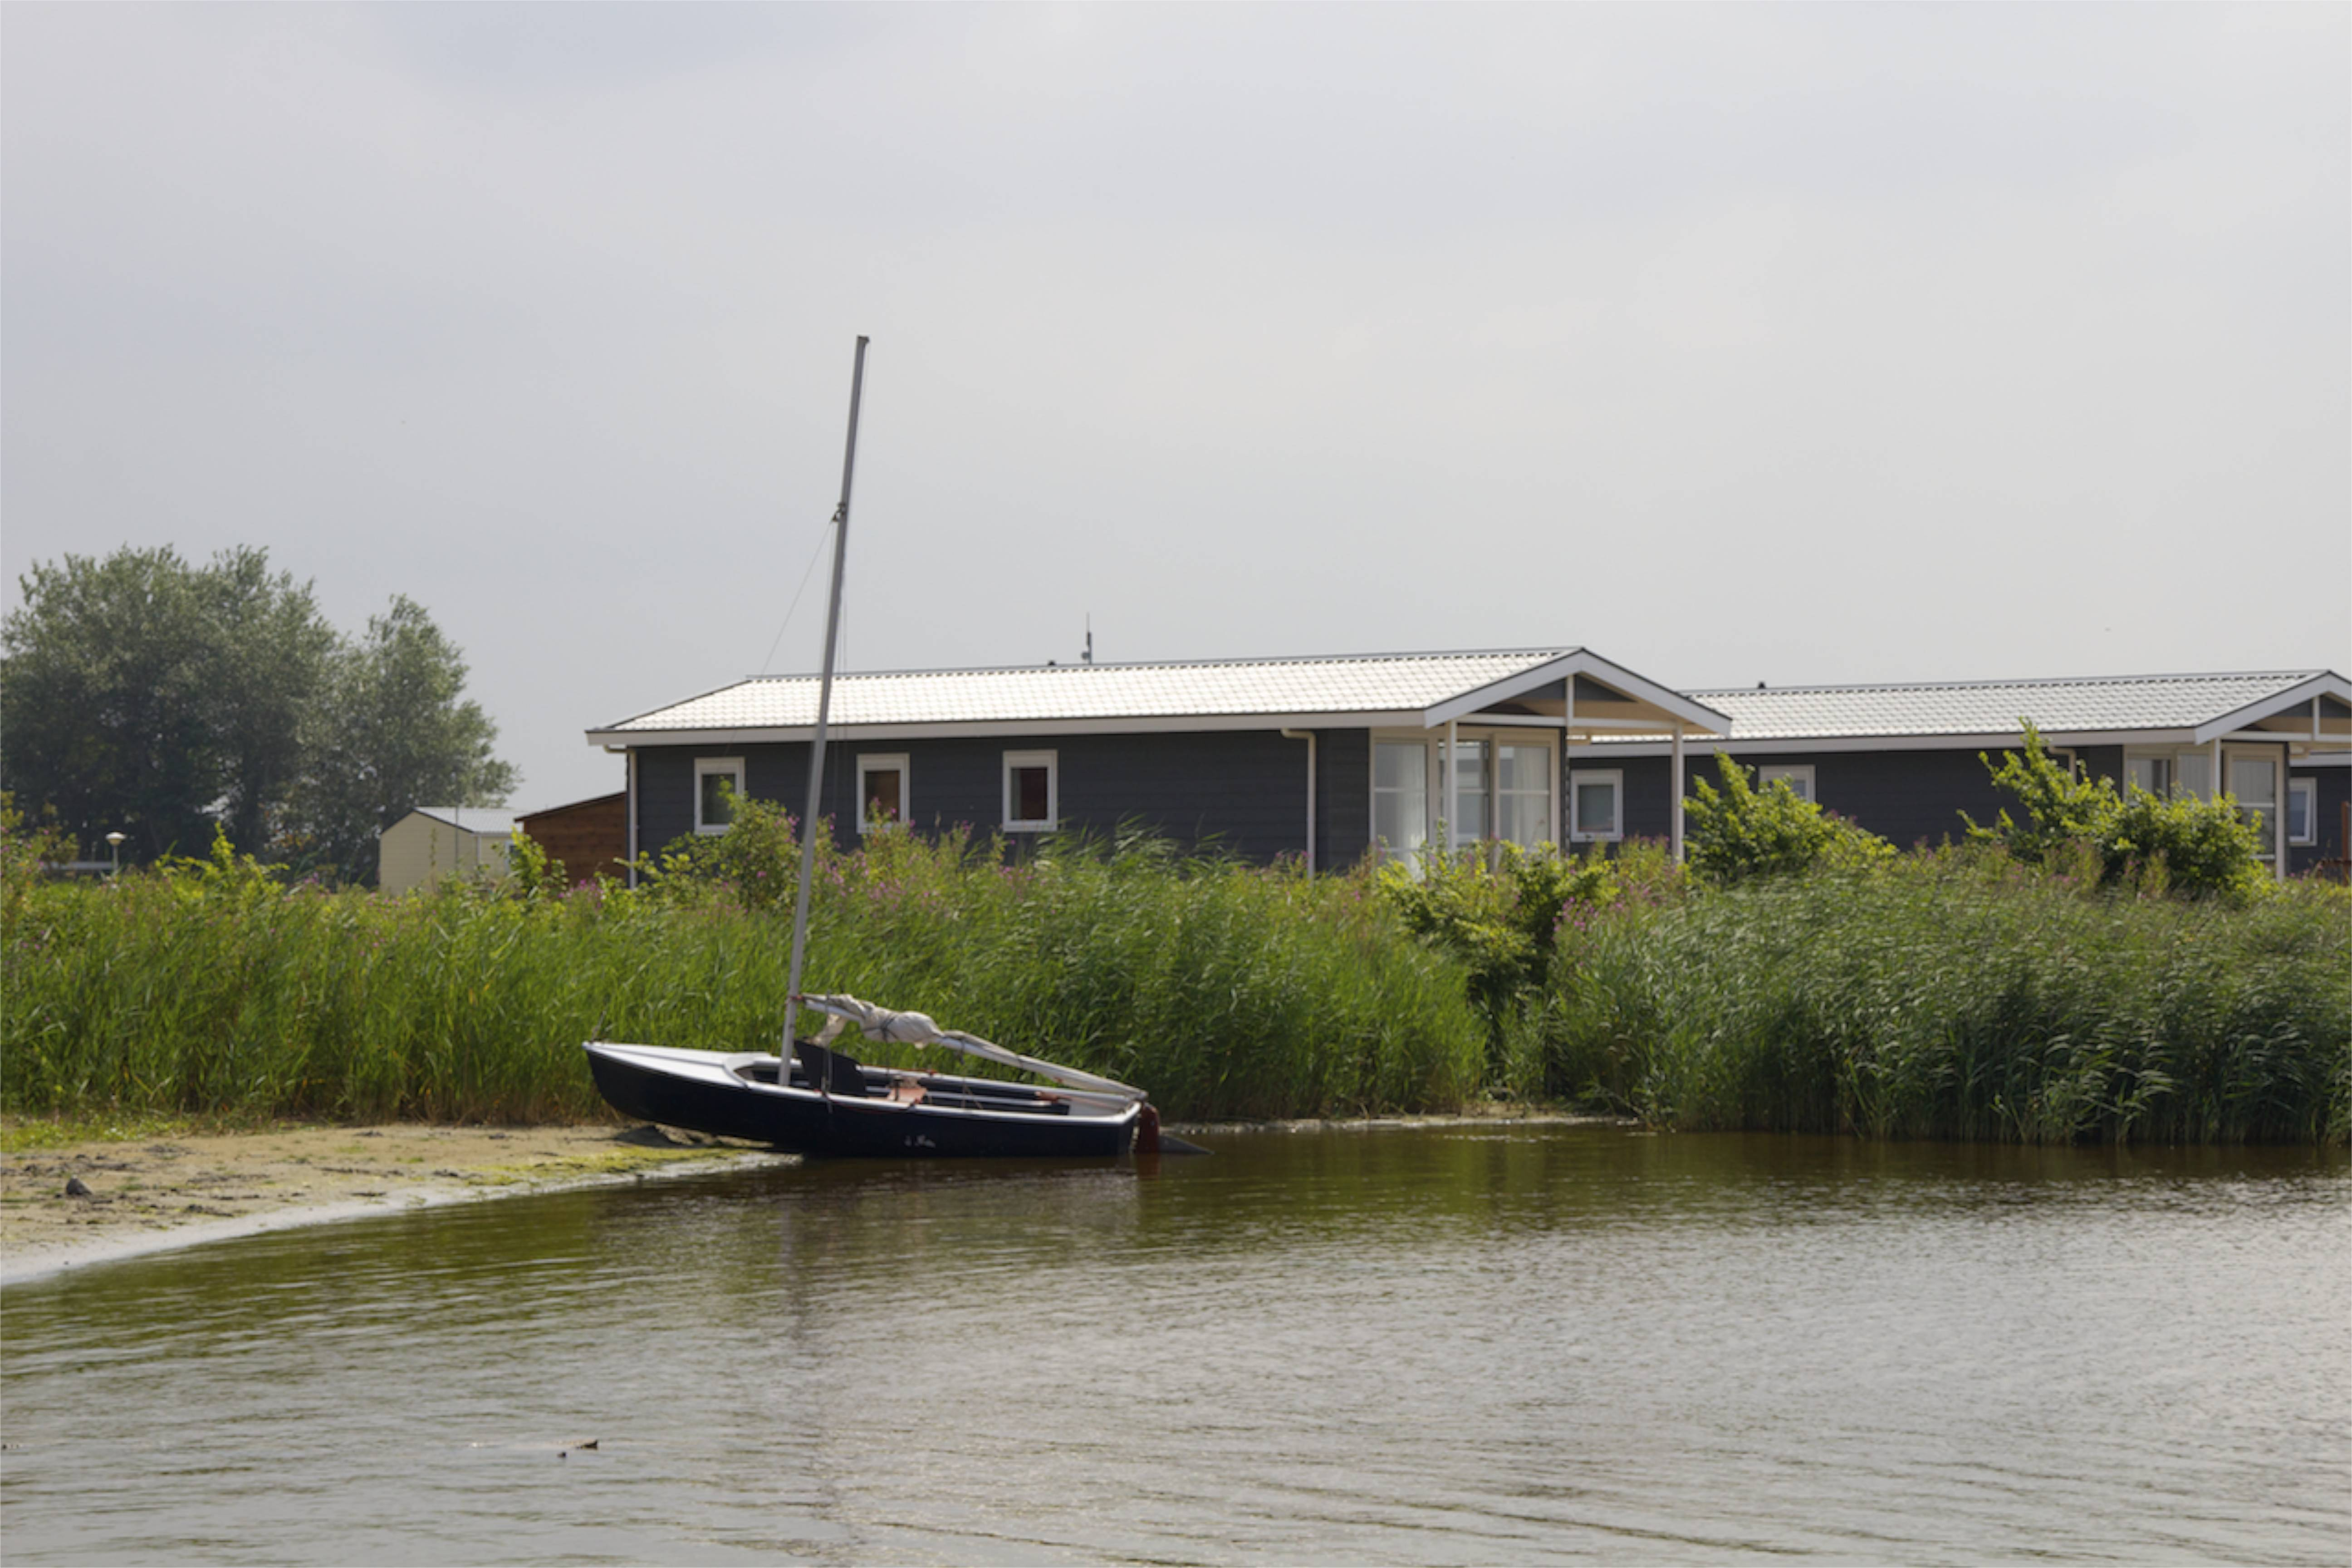 Recreatiecentrum Lauwersoog